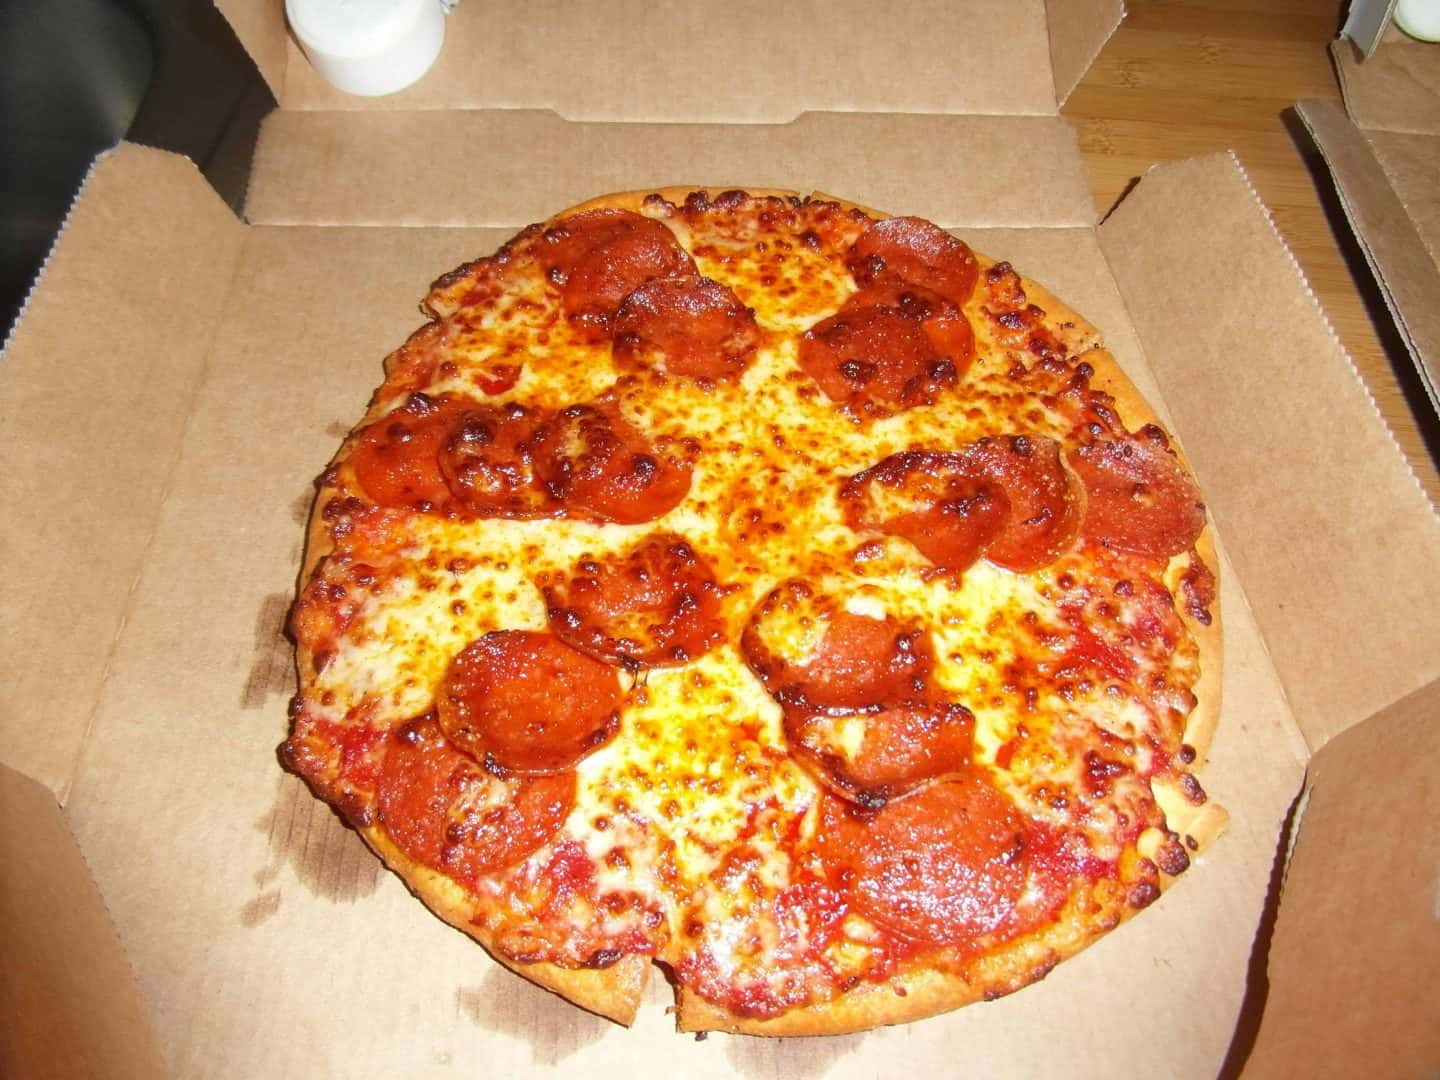 Gluten free Domino's pizza….tasty, but only for the rich?